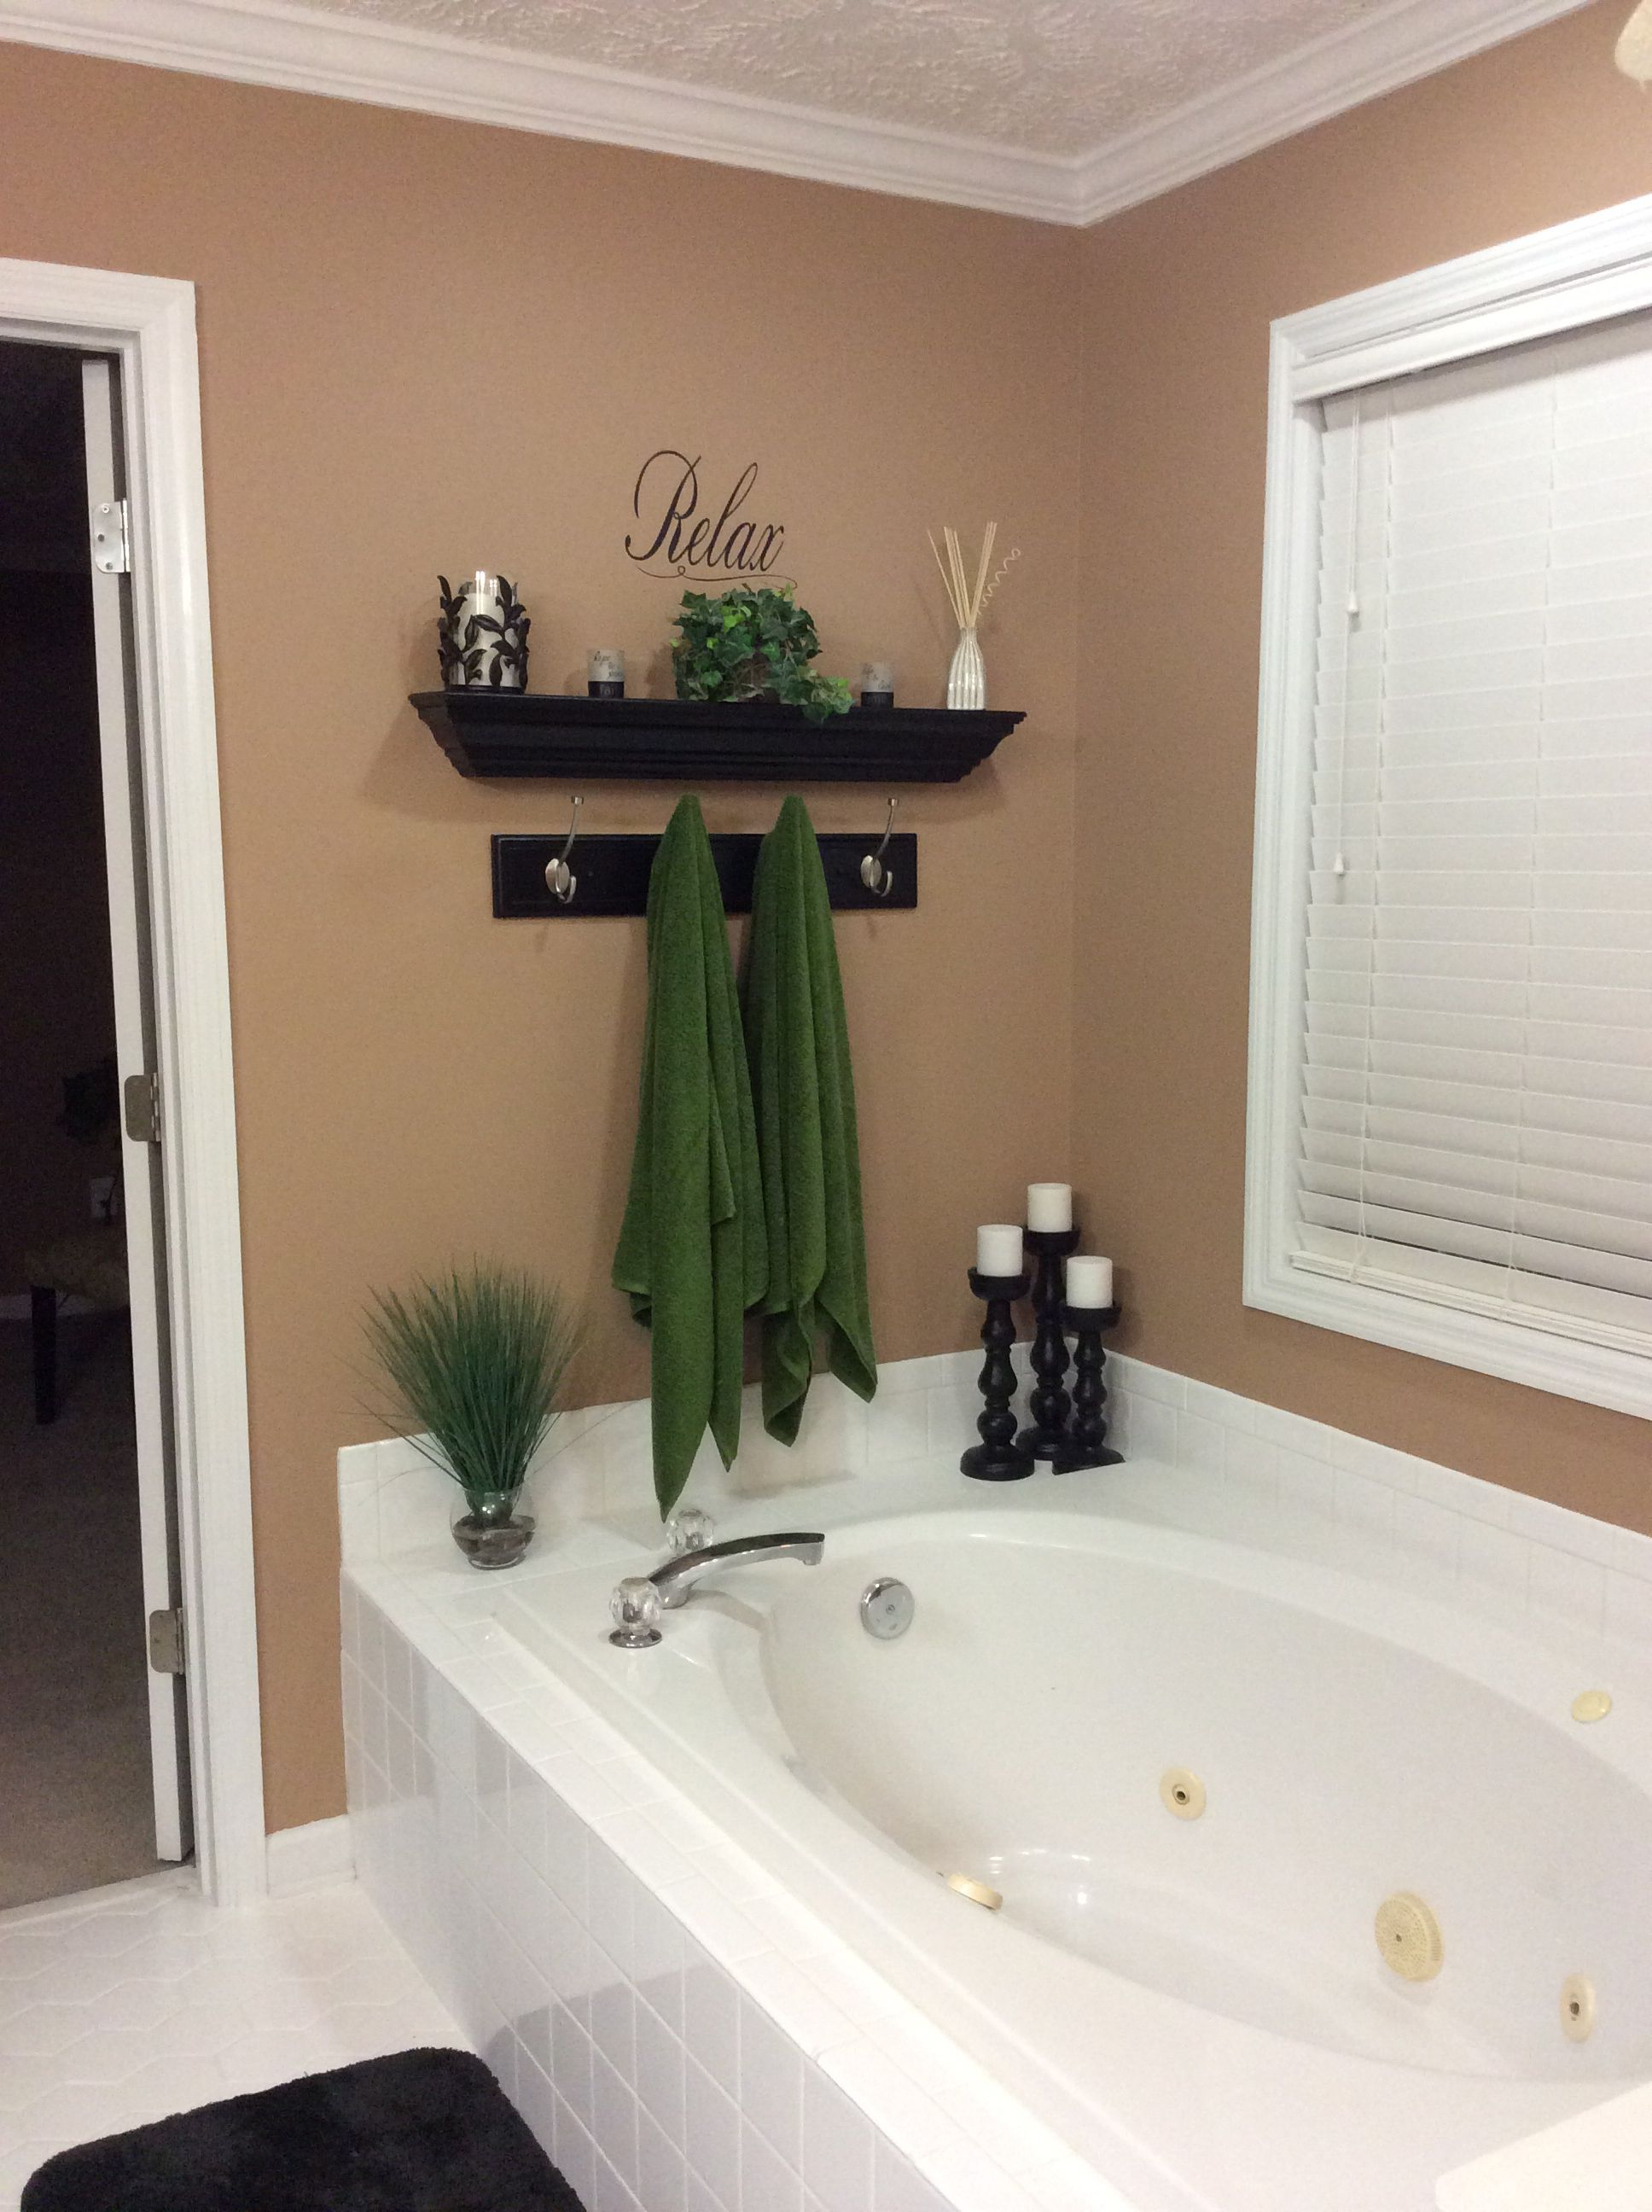 Bathroom Garden Tub Wall